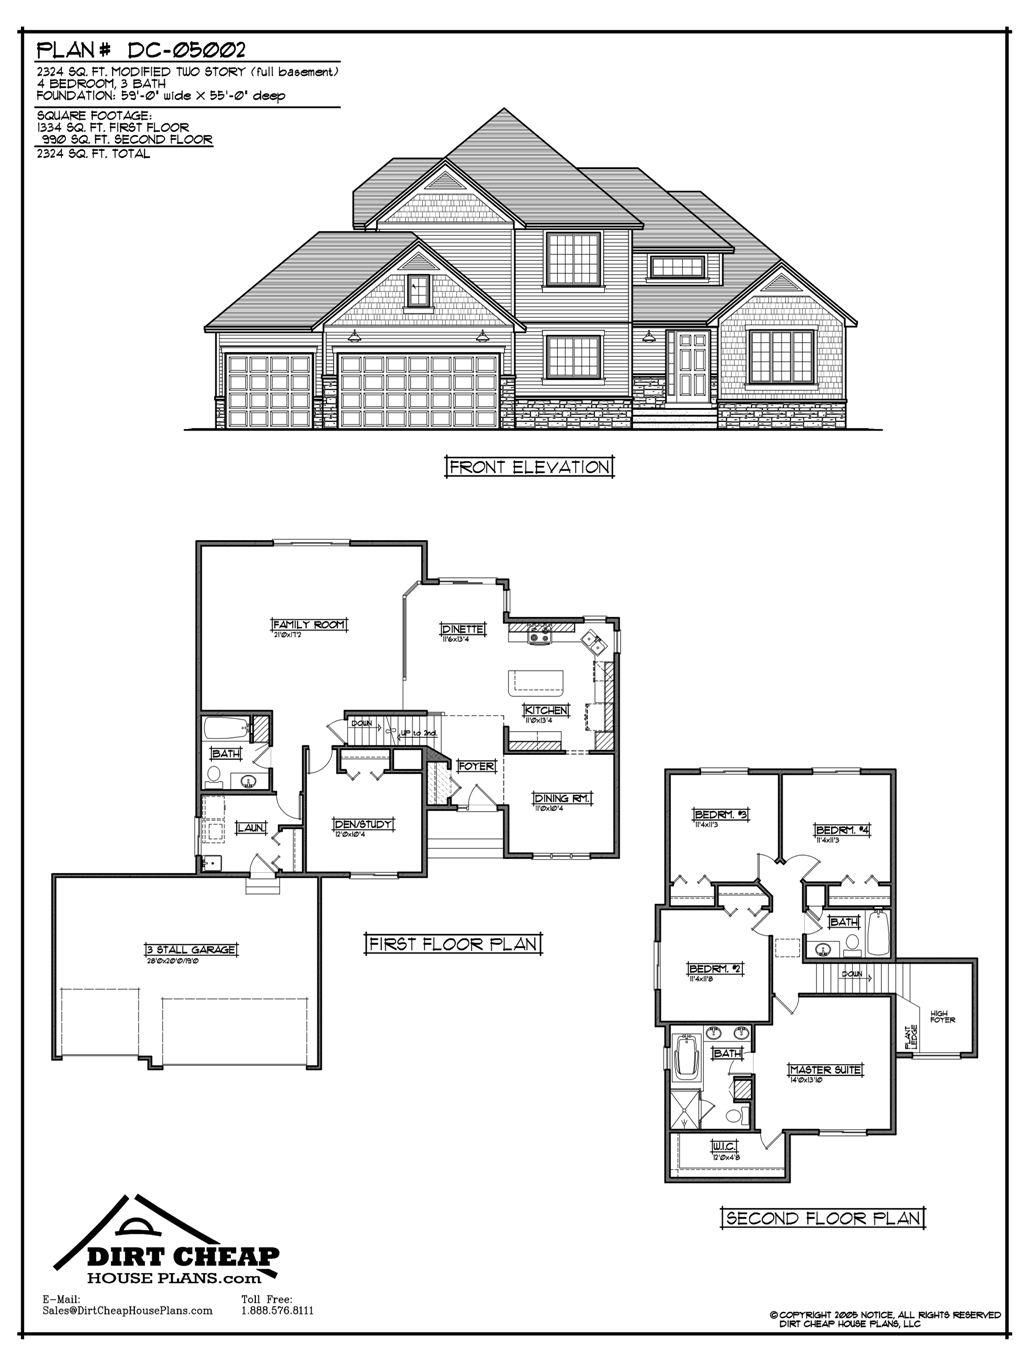 Inexpensive Two Story House Plans Dc 05002 Modified Two Story